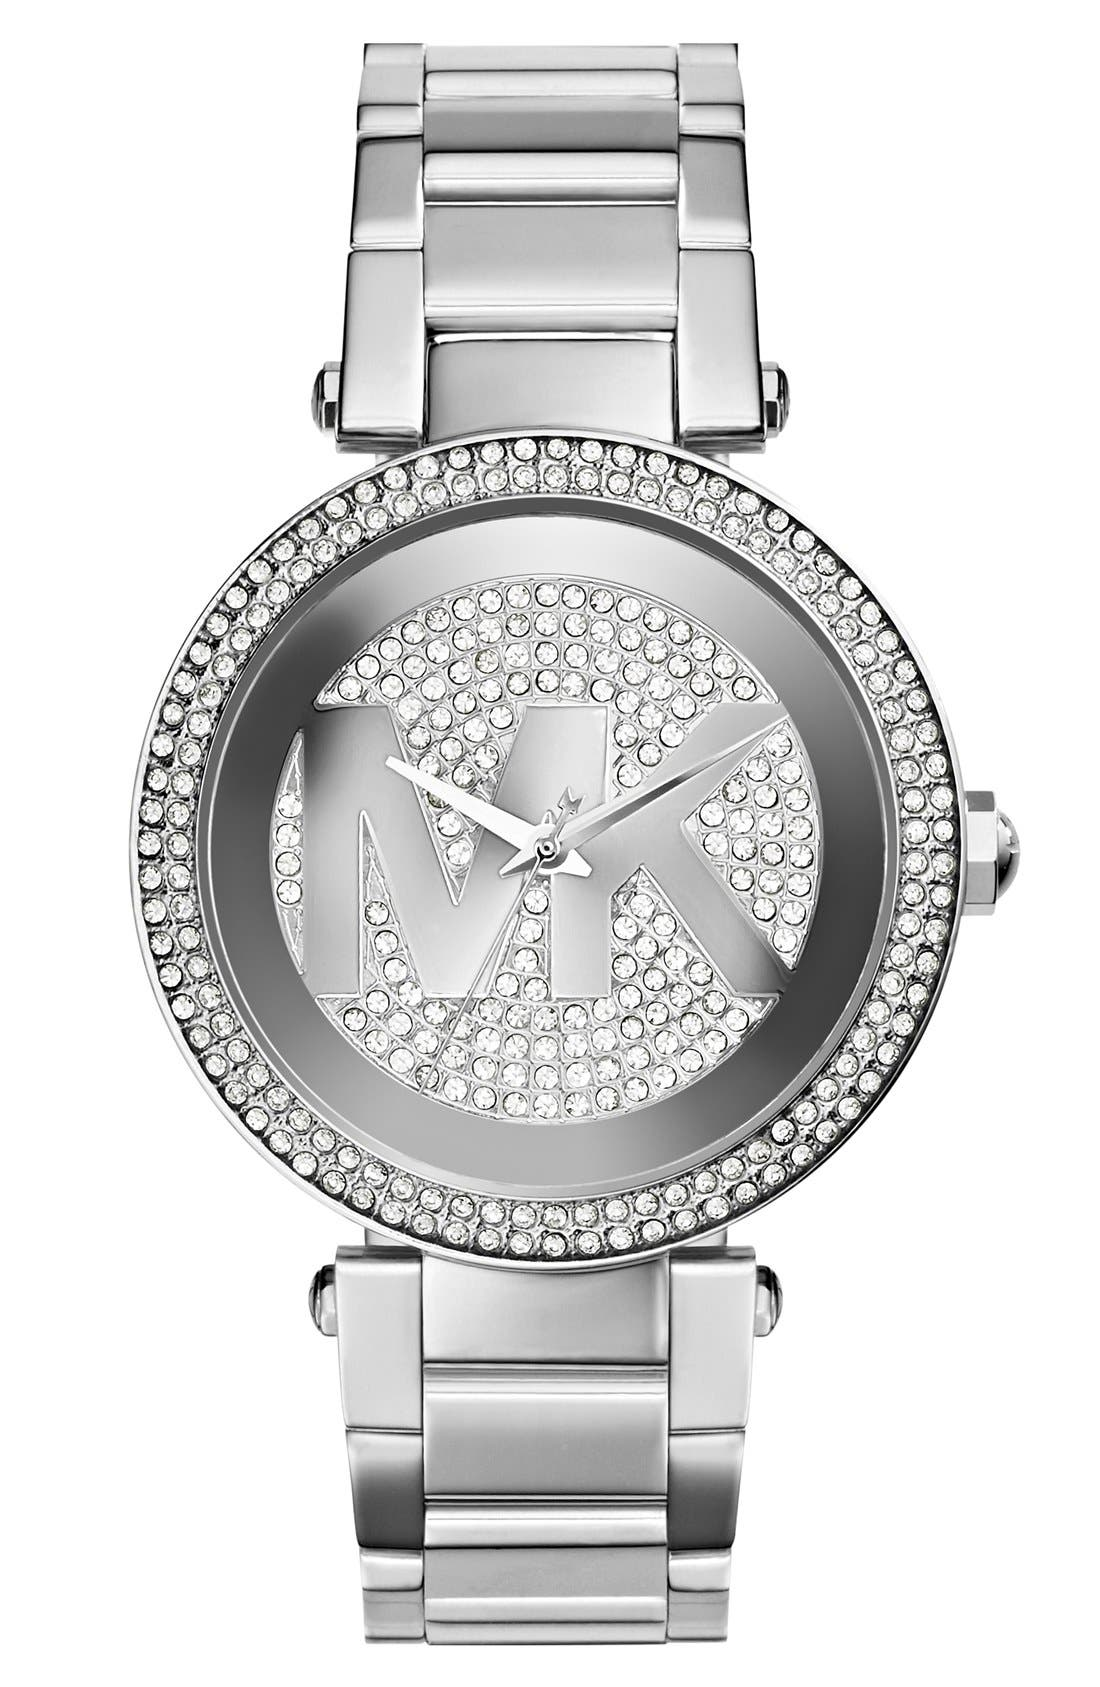 Main Image - Michael Kors 'Parker' Pavé Logo Dial Bracelet Watch, 39mm